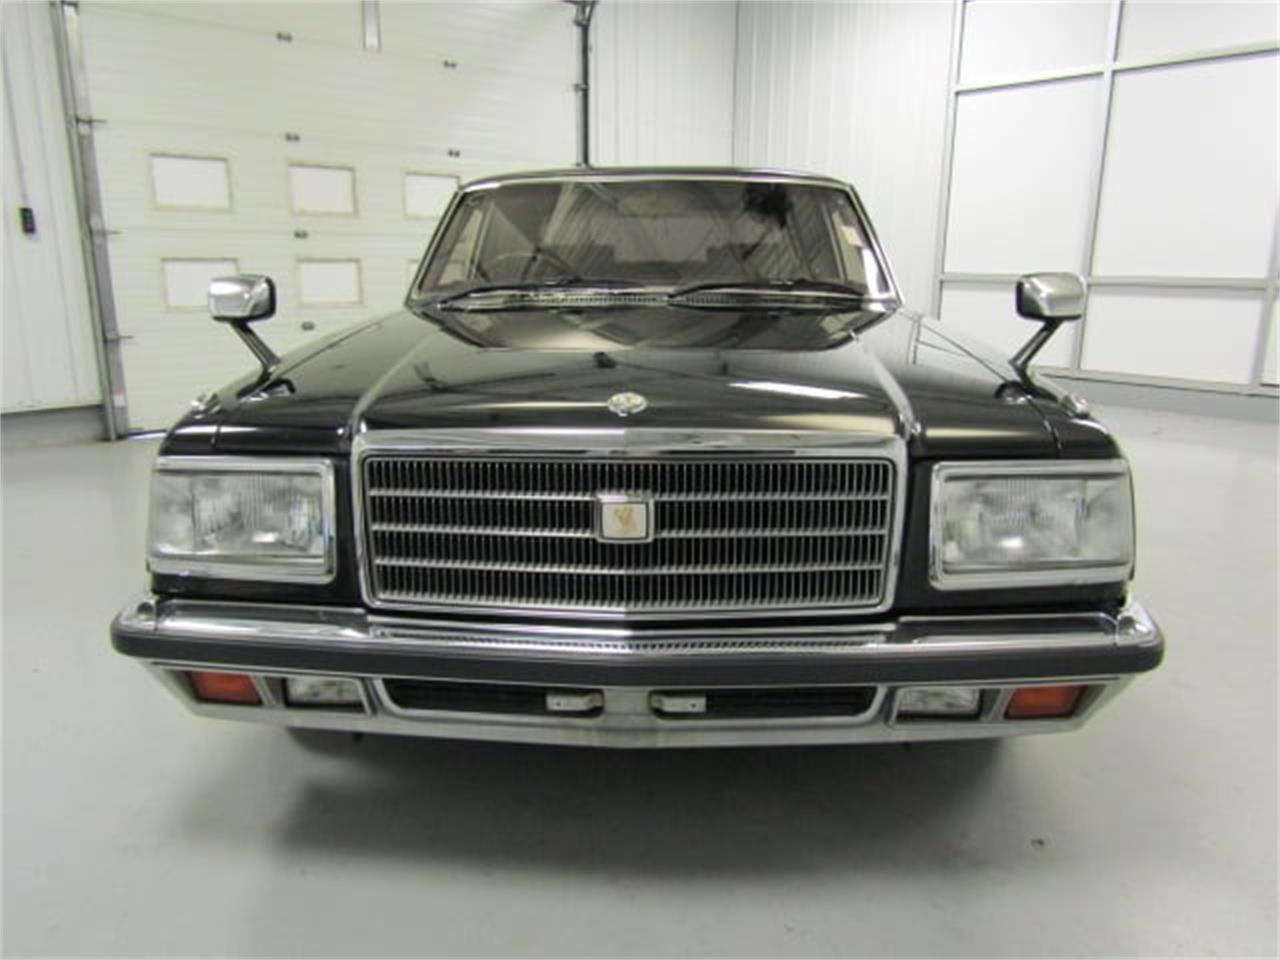 Large Picture of 1989 Century located in Virginia Offered by Duncan Imports & Classic Cars - JM37